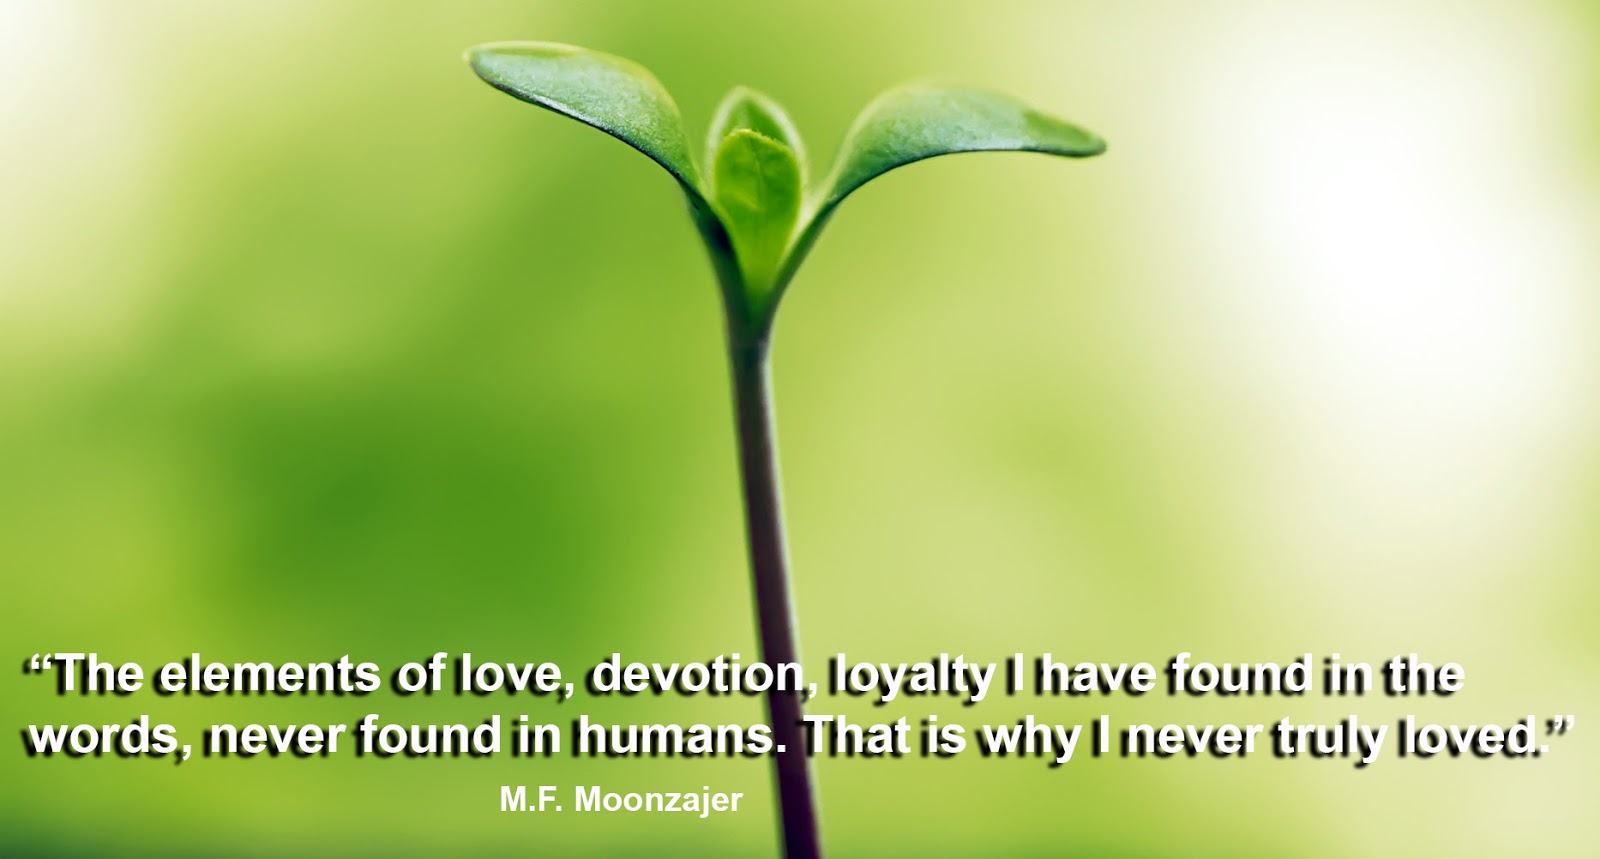 Devotion Quotes Best Facebook Covers Quotes And Sayings Love Quotes Devotion